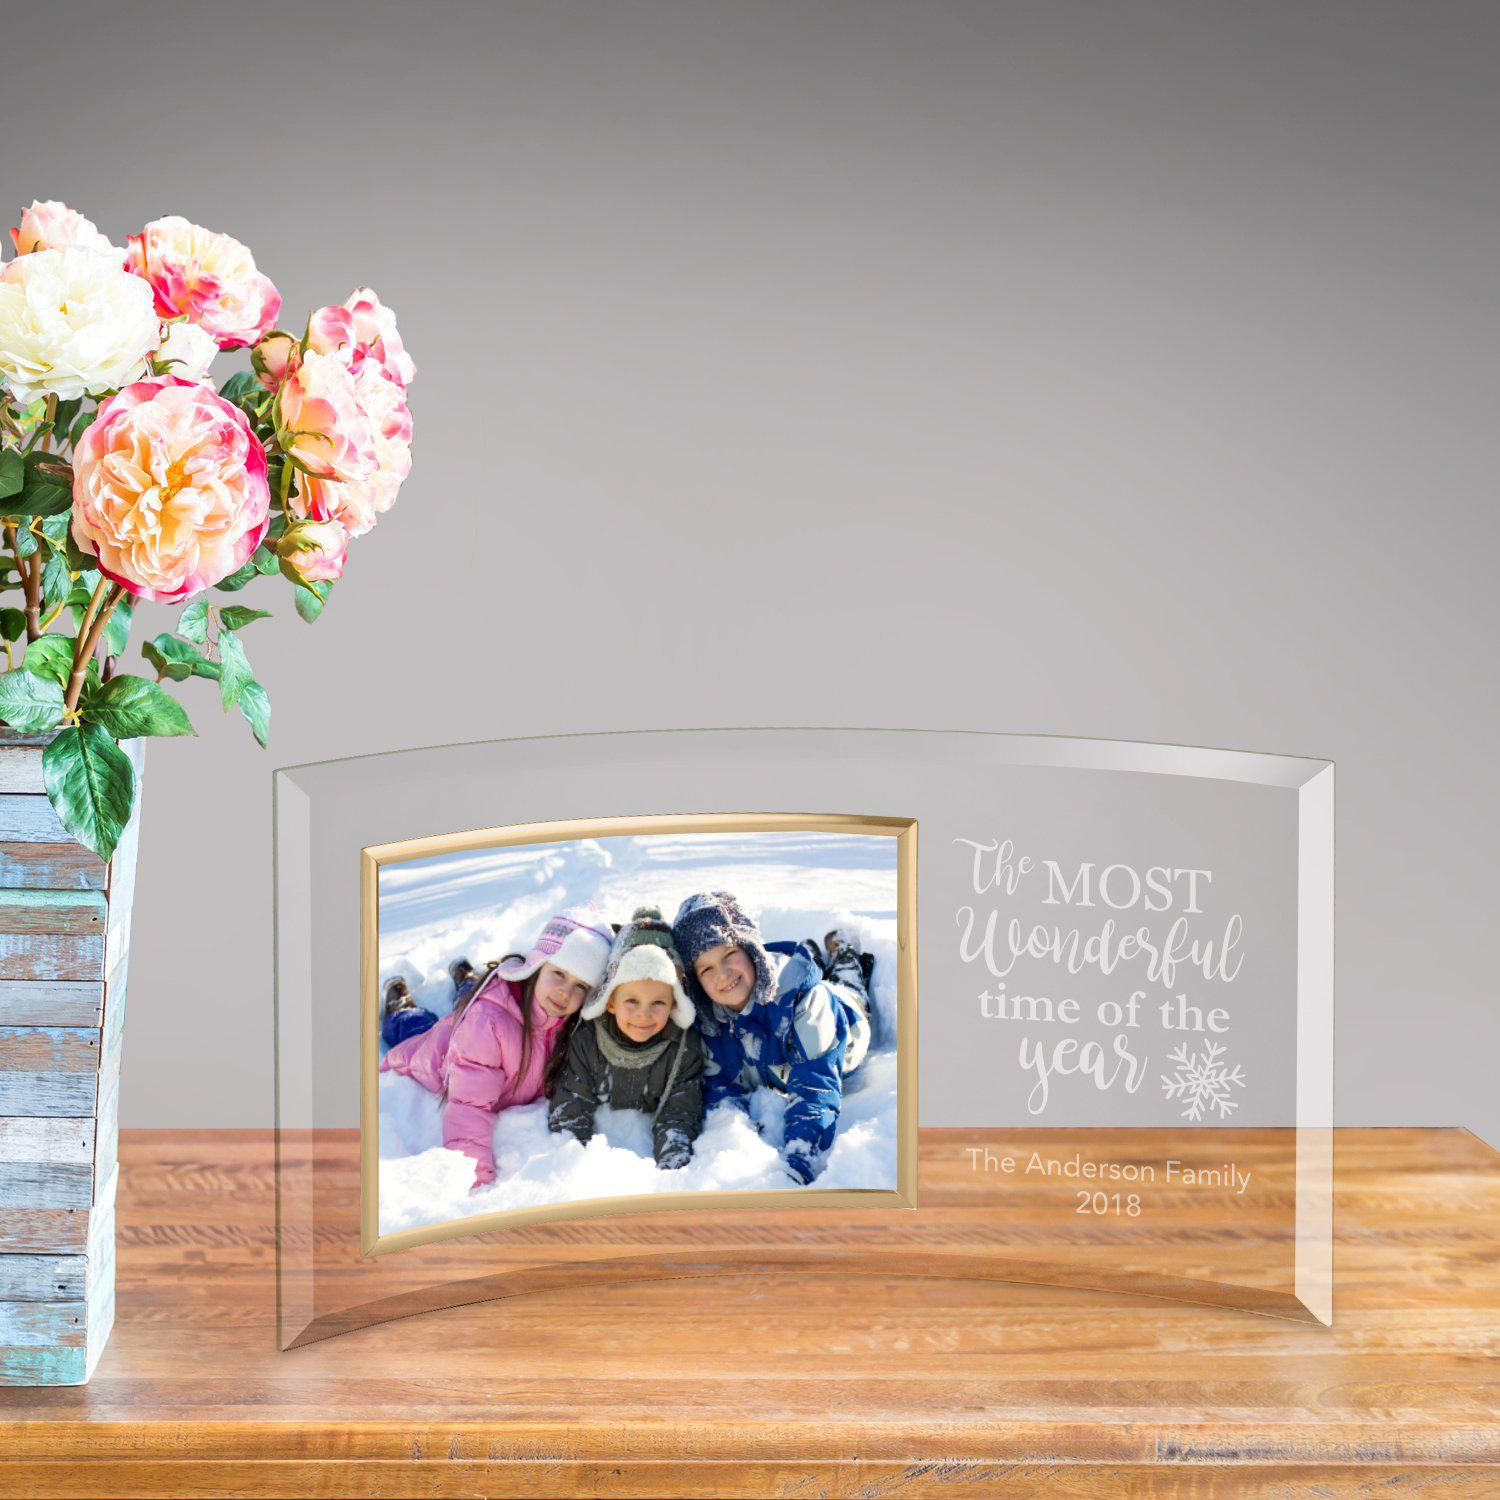 Personalized Glass Picture Frame - The Most Wonderful Time of The Year